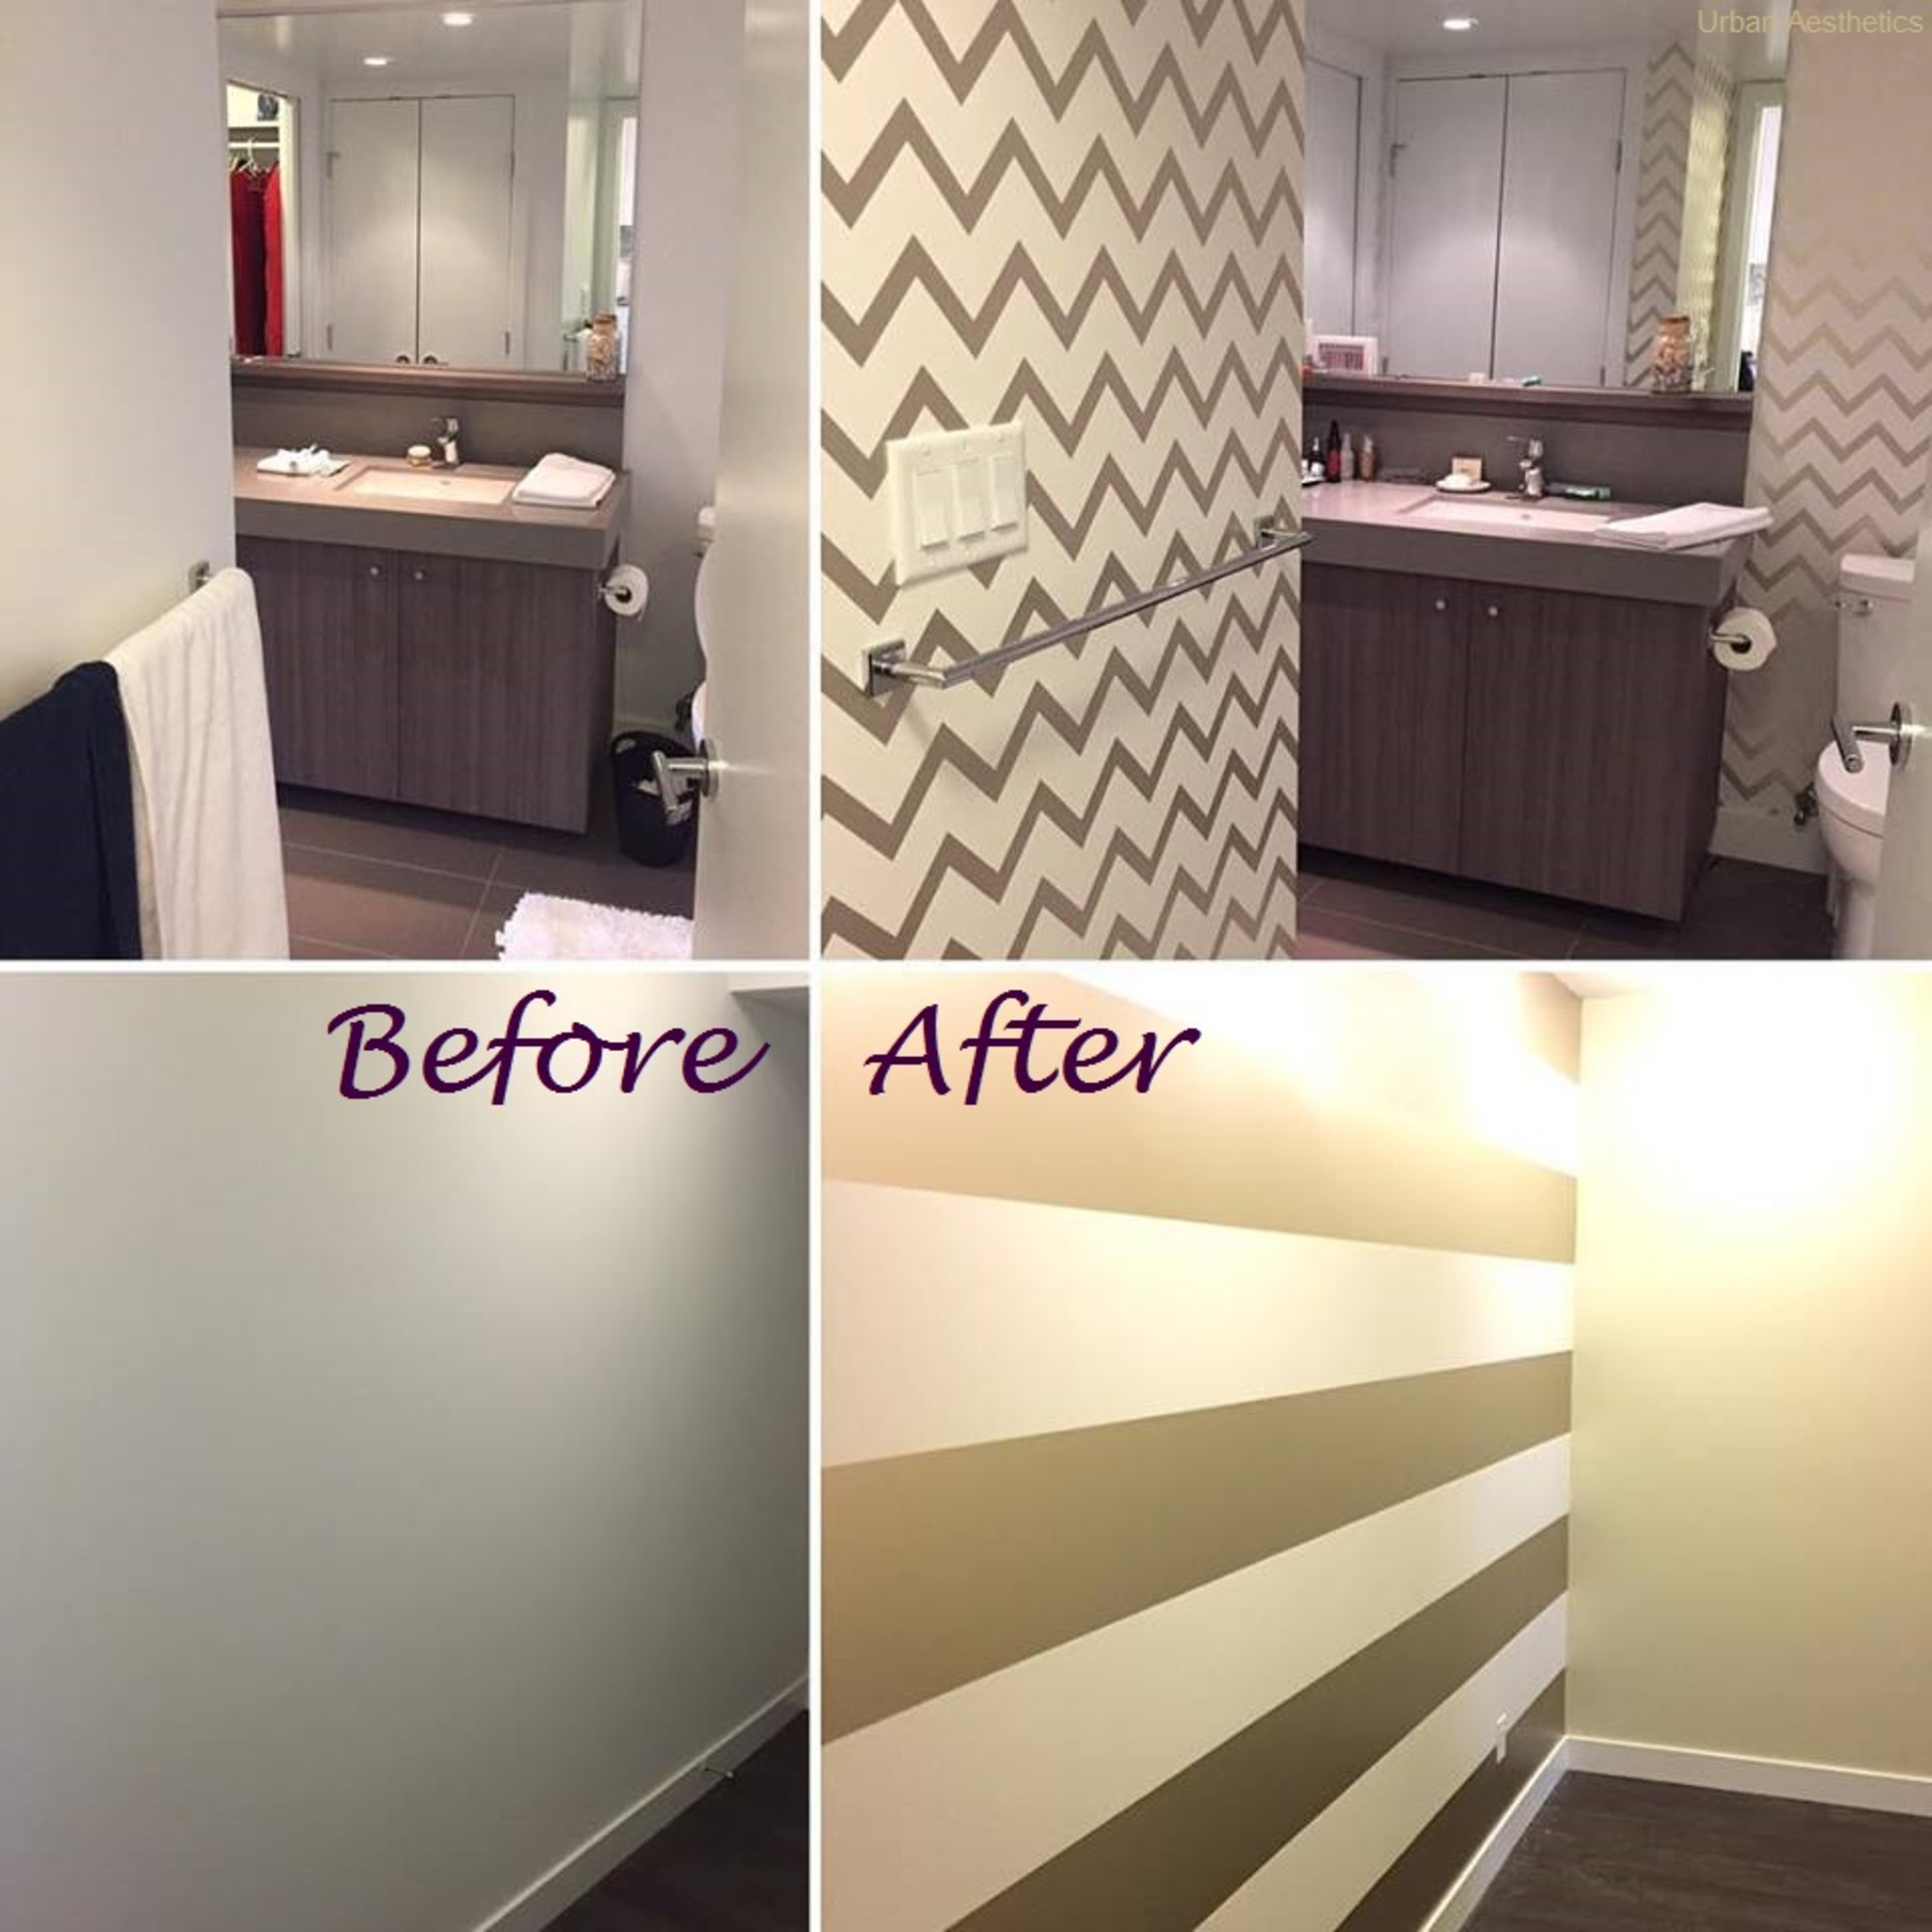 wallpaper before and after - Copy.jpg